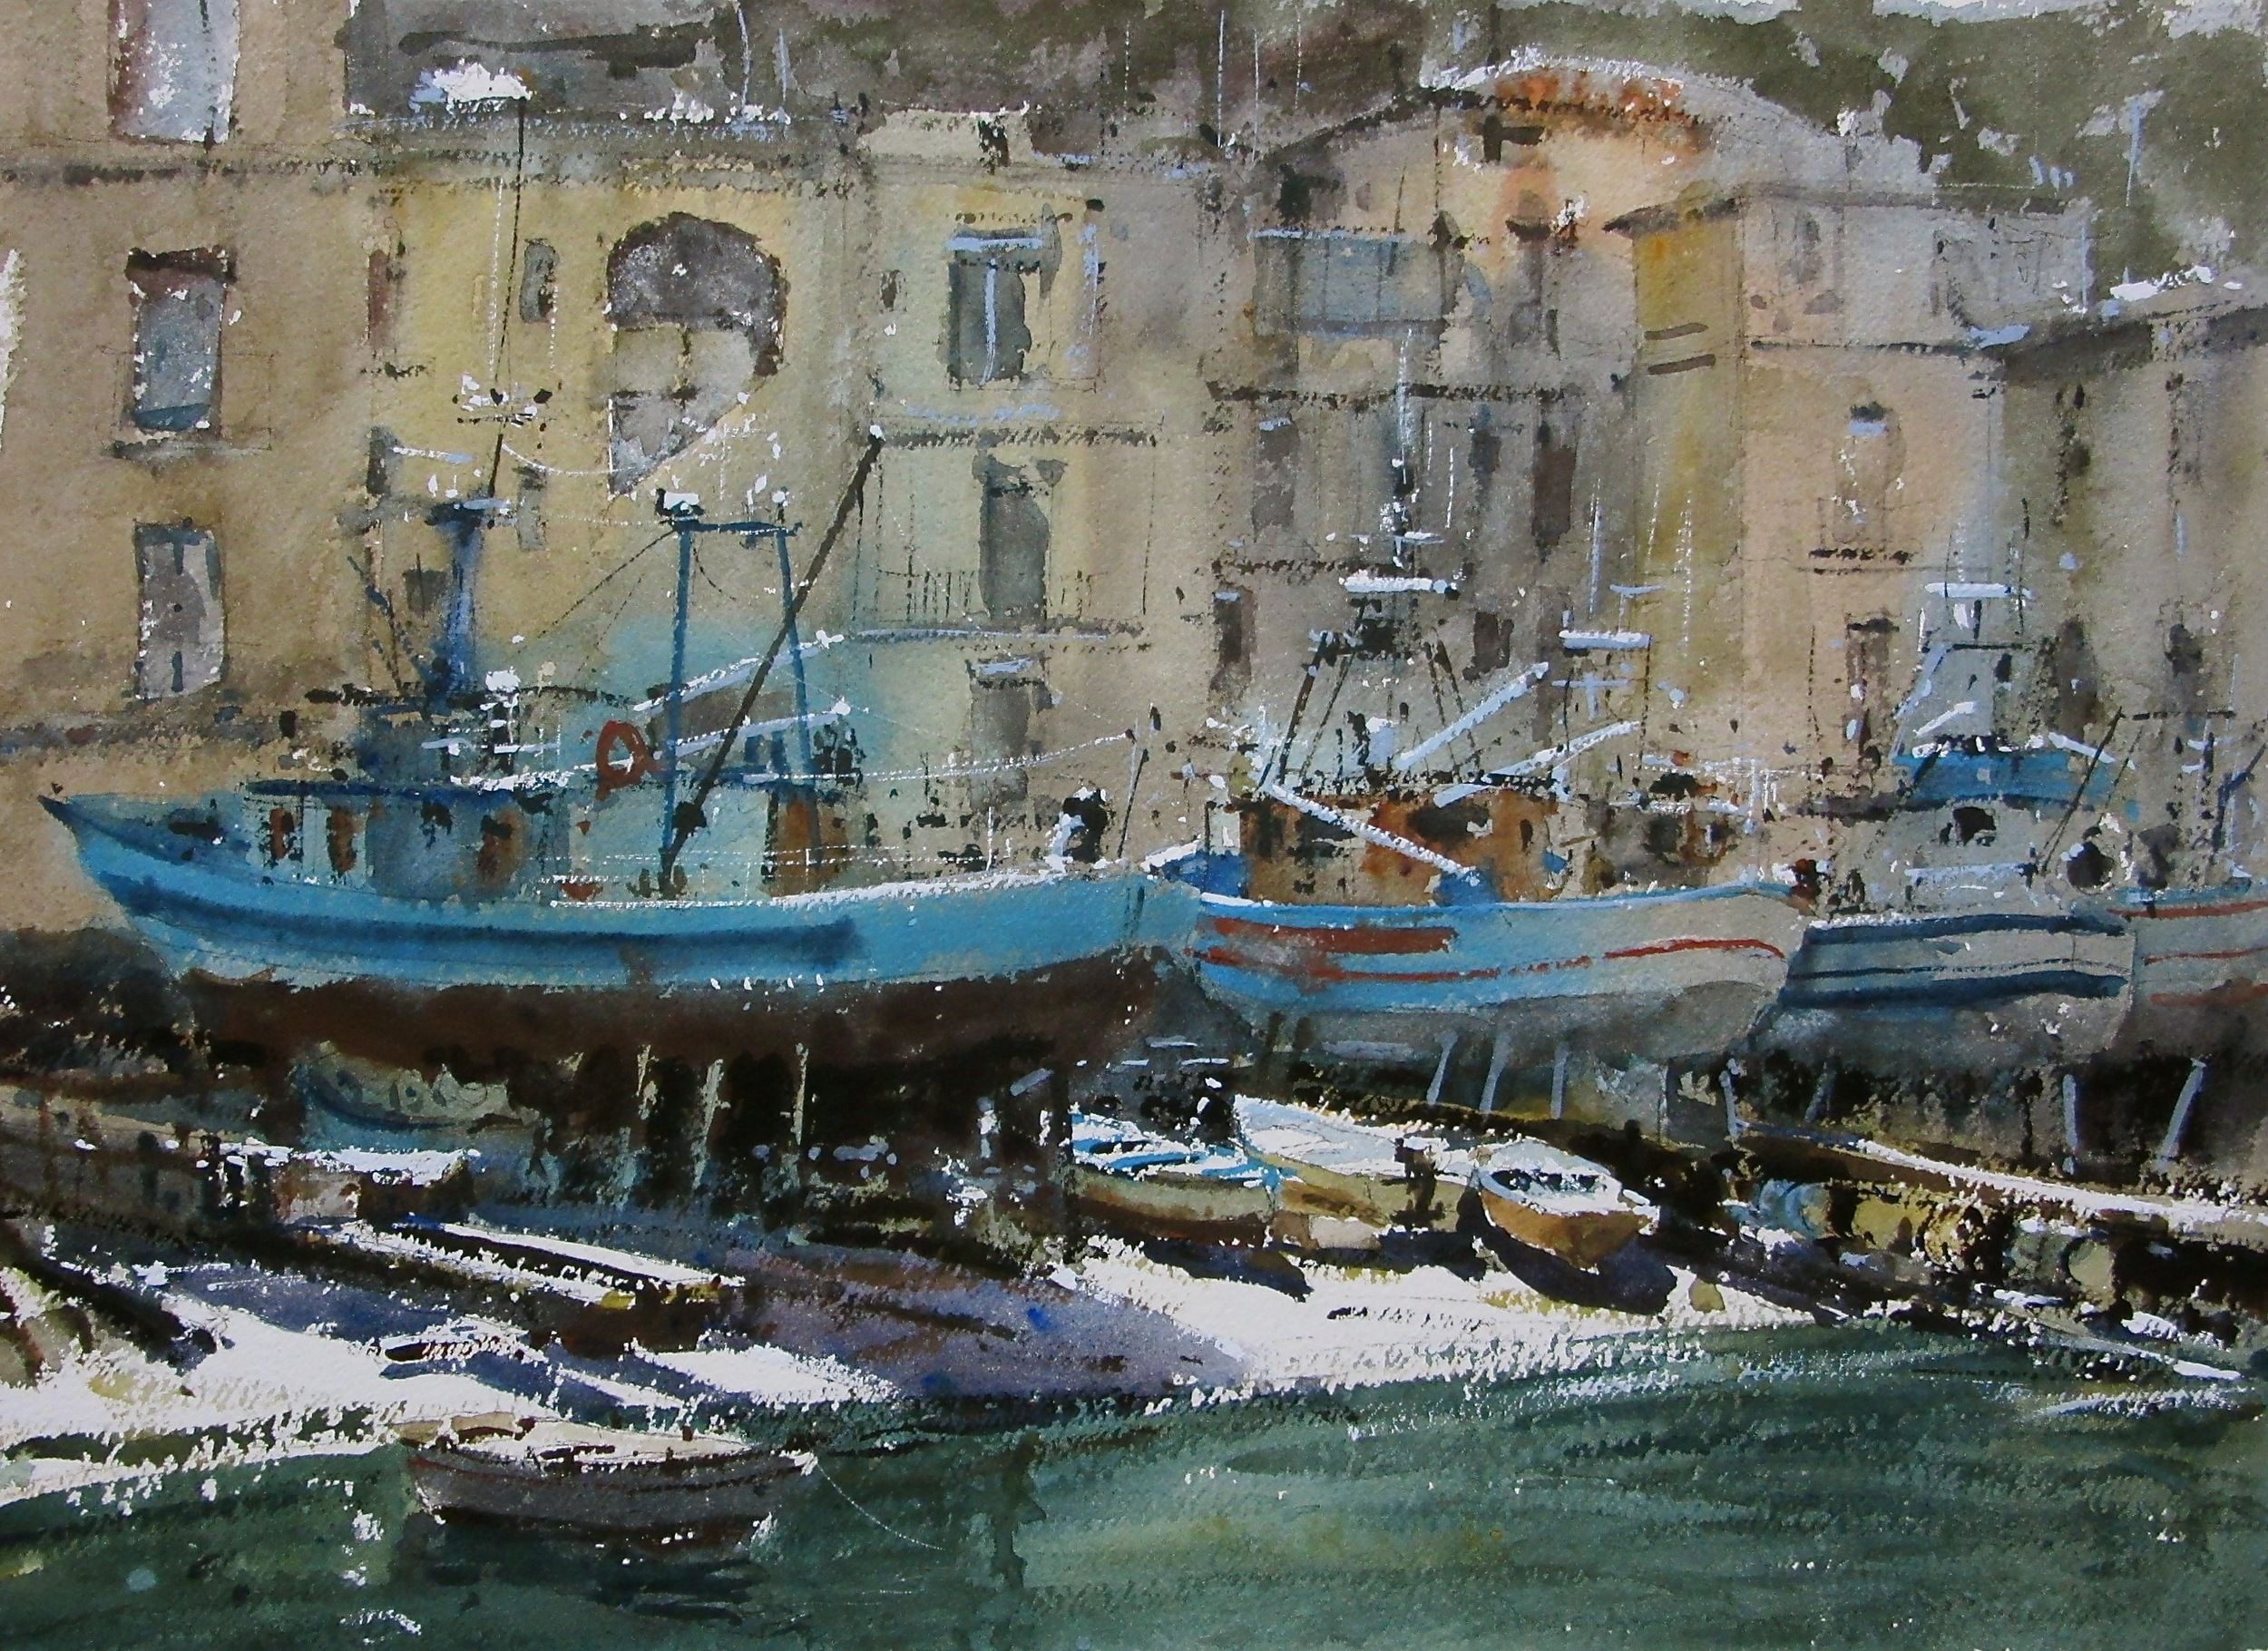 Beached Fishing Boats Sorrento: 13.5 x 19 in: SOLD